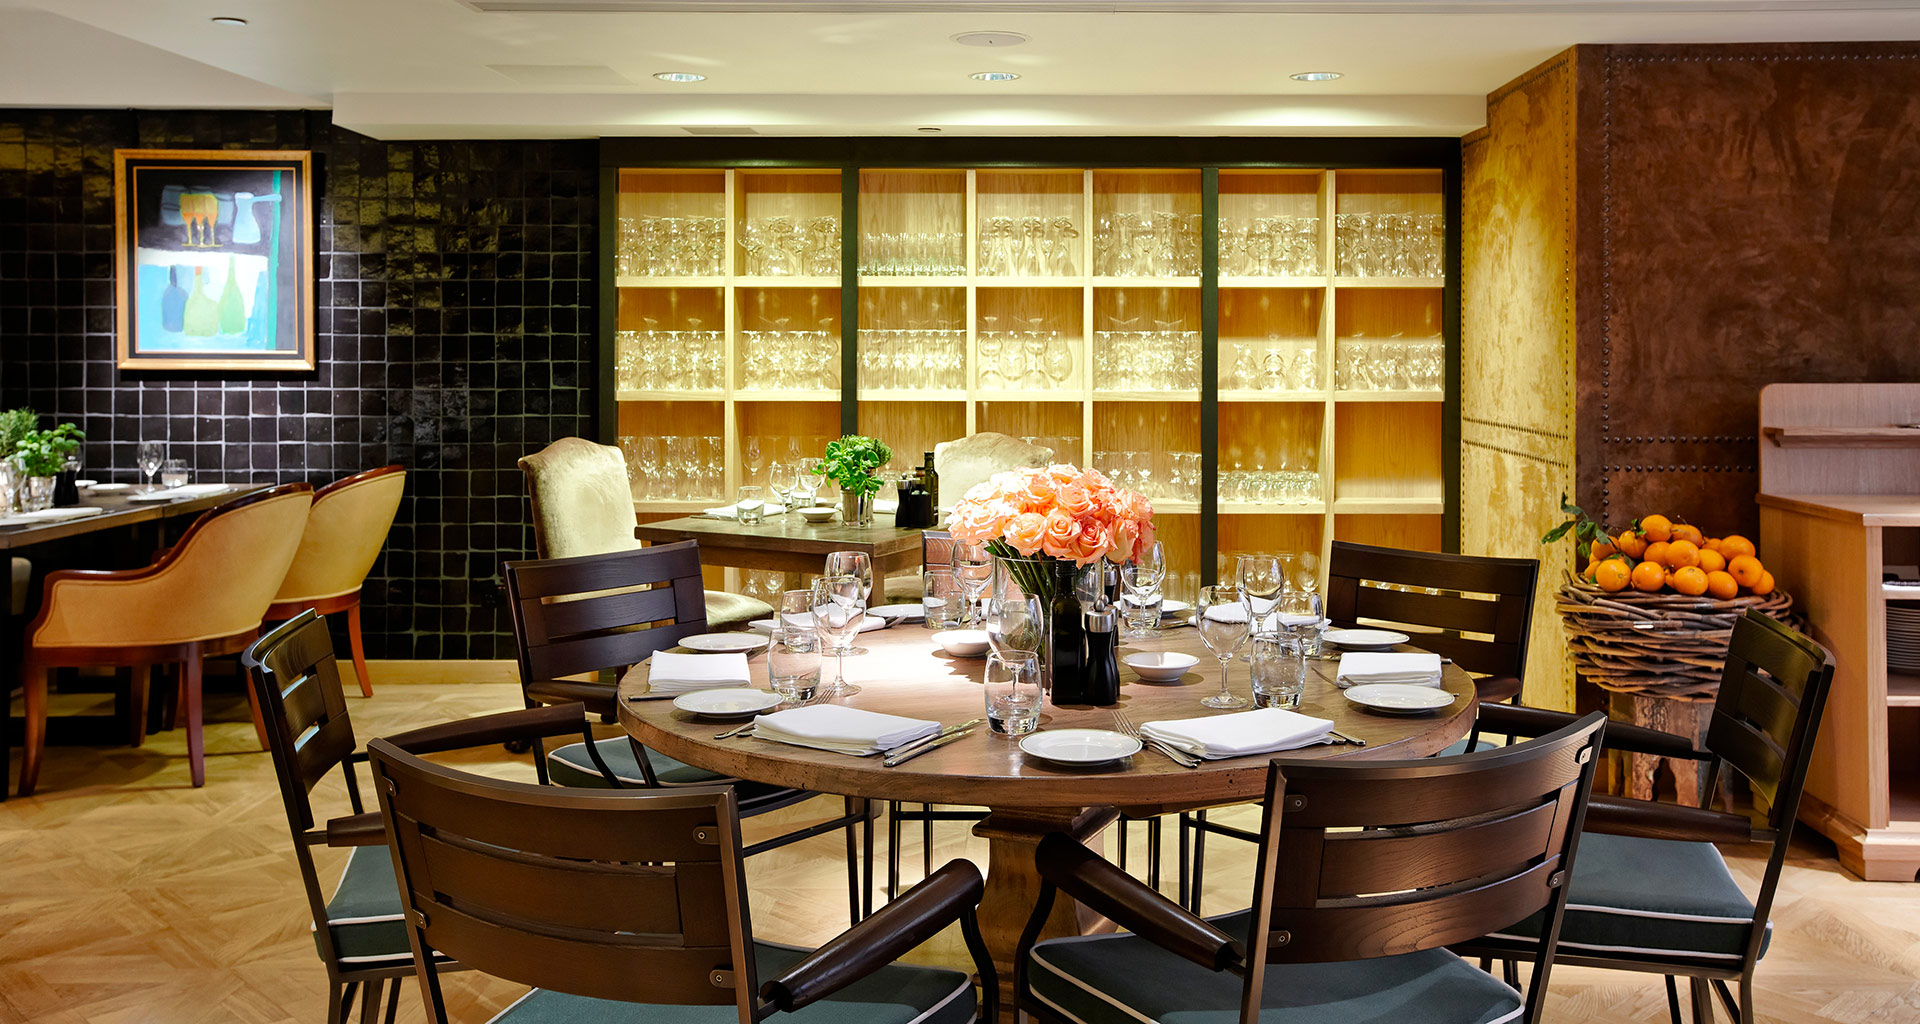 Dining room of the Novikov restaurant in London furnished with Promemoria | Promemoria